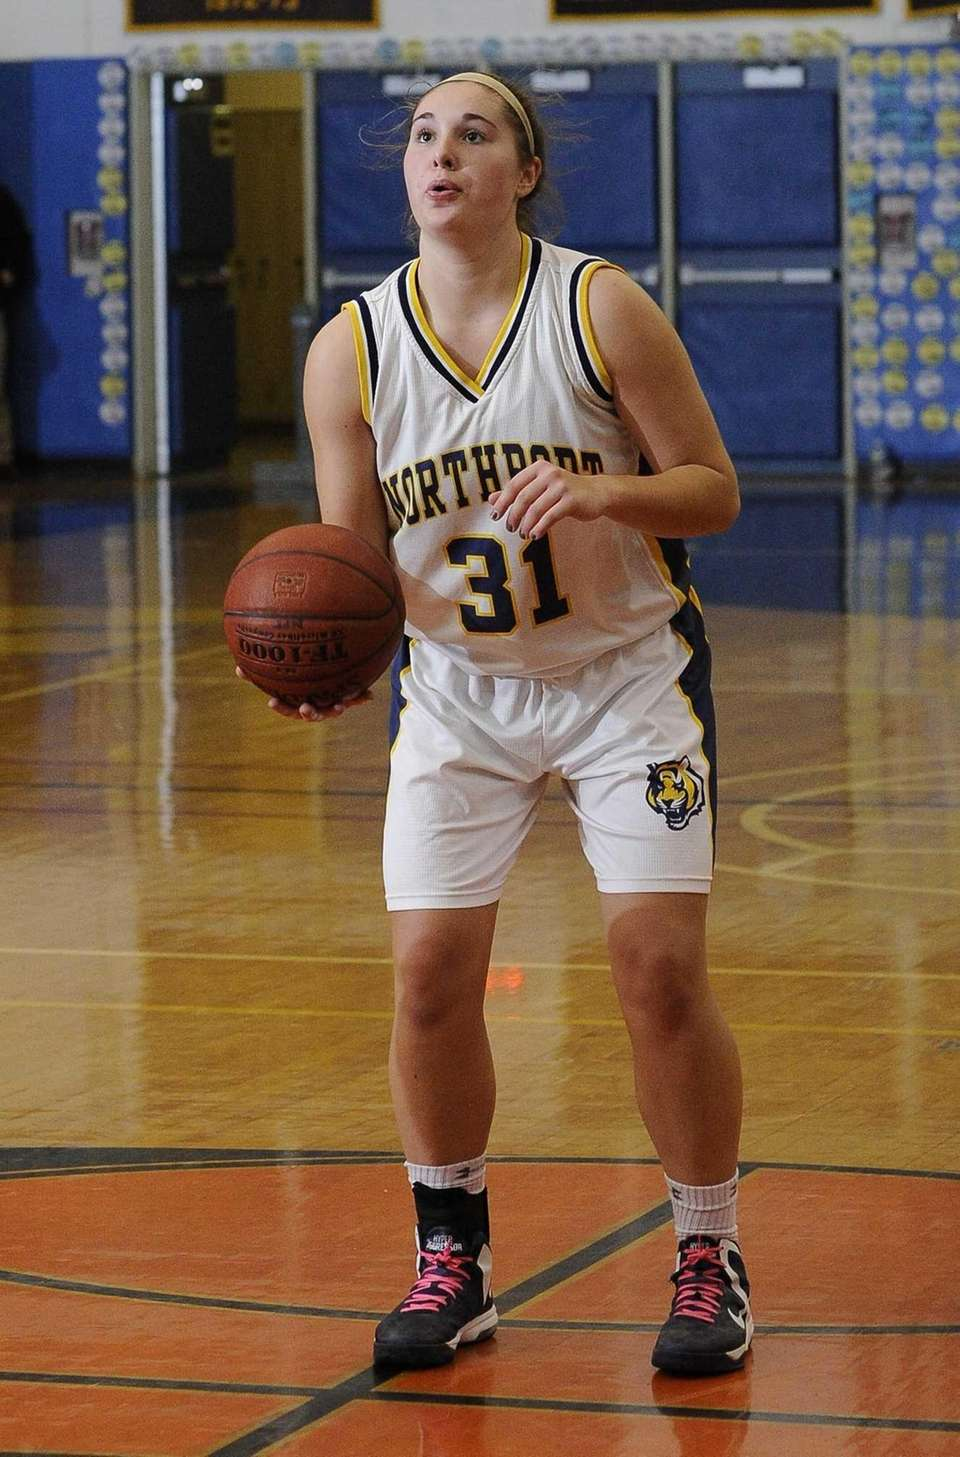 Northport's Dorrien Van Dyke sets up for her